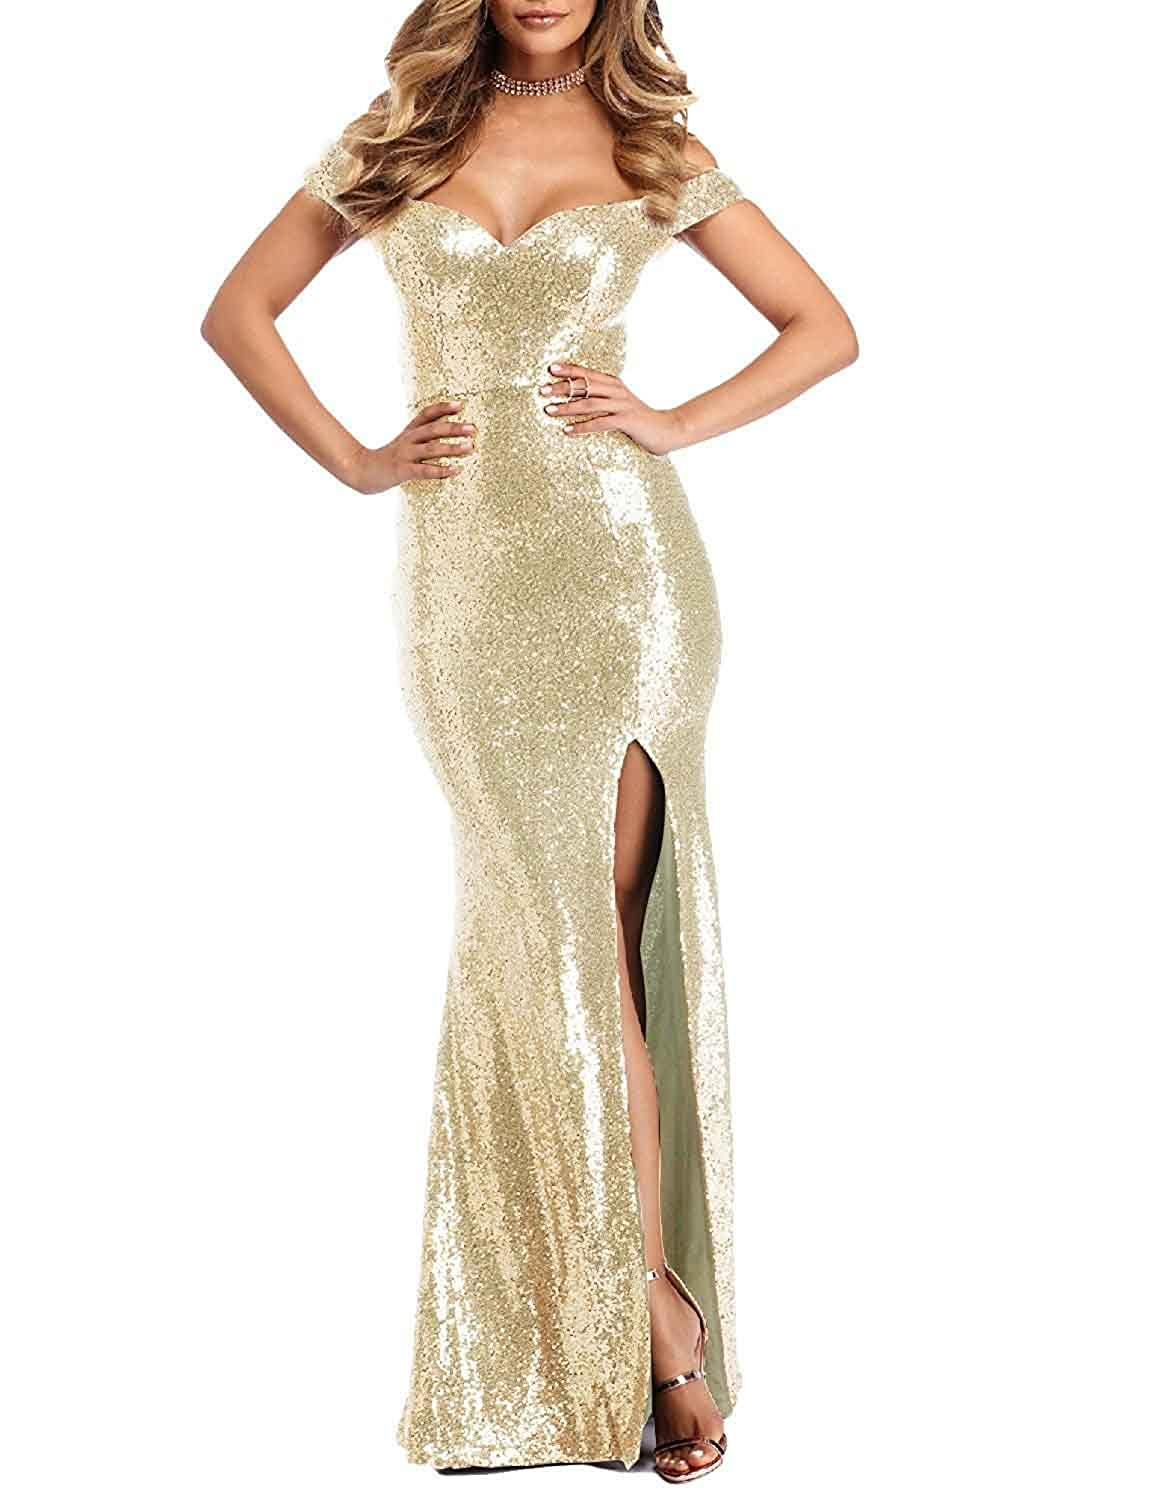 14590acf72c0 Little Star Women's Off The Shoulder Prom Dresses Long Mermaid Sequins  Evening Gowns Side Slit Party Ball Gown at Amazon Women's Clothing store: